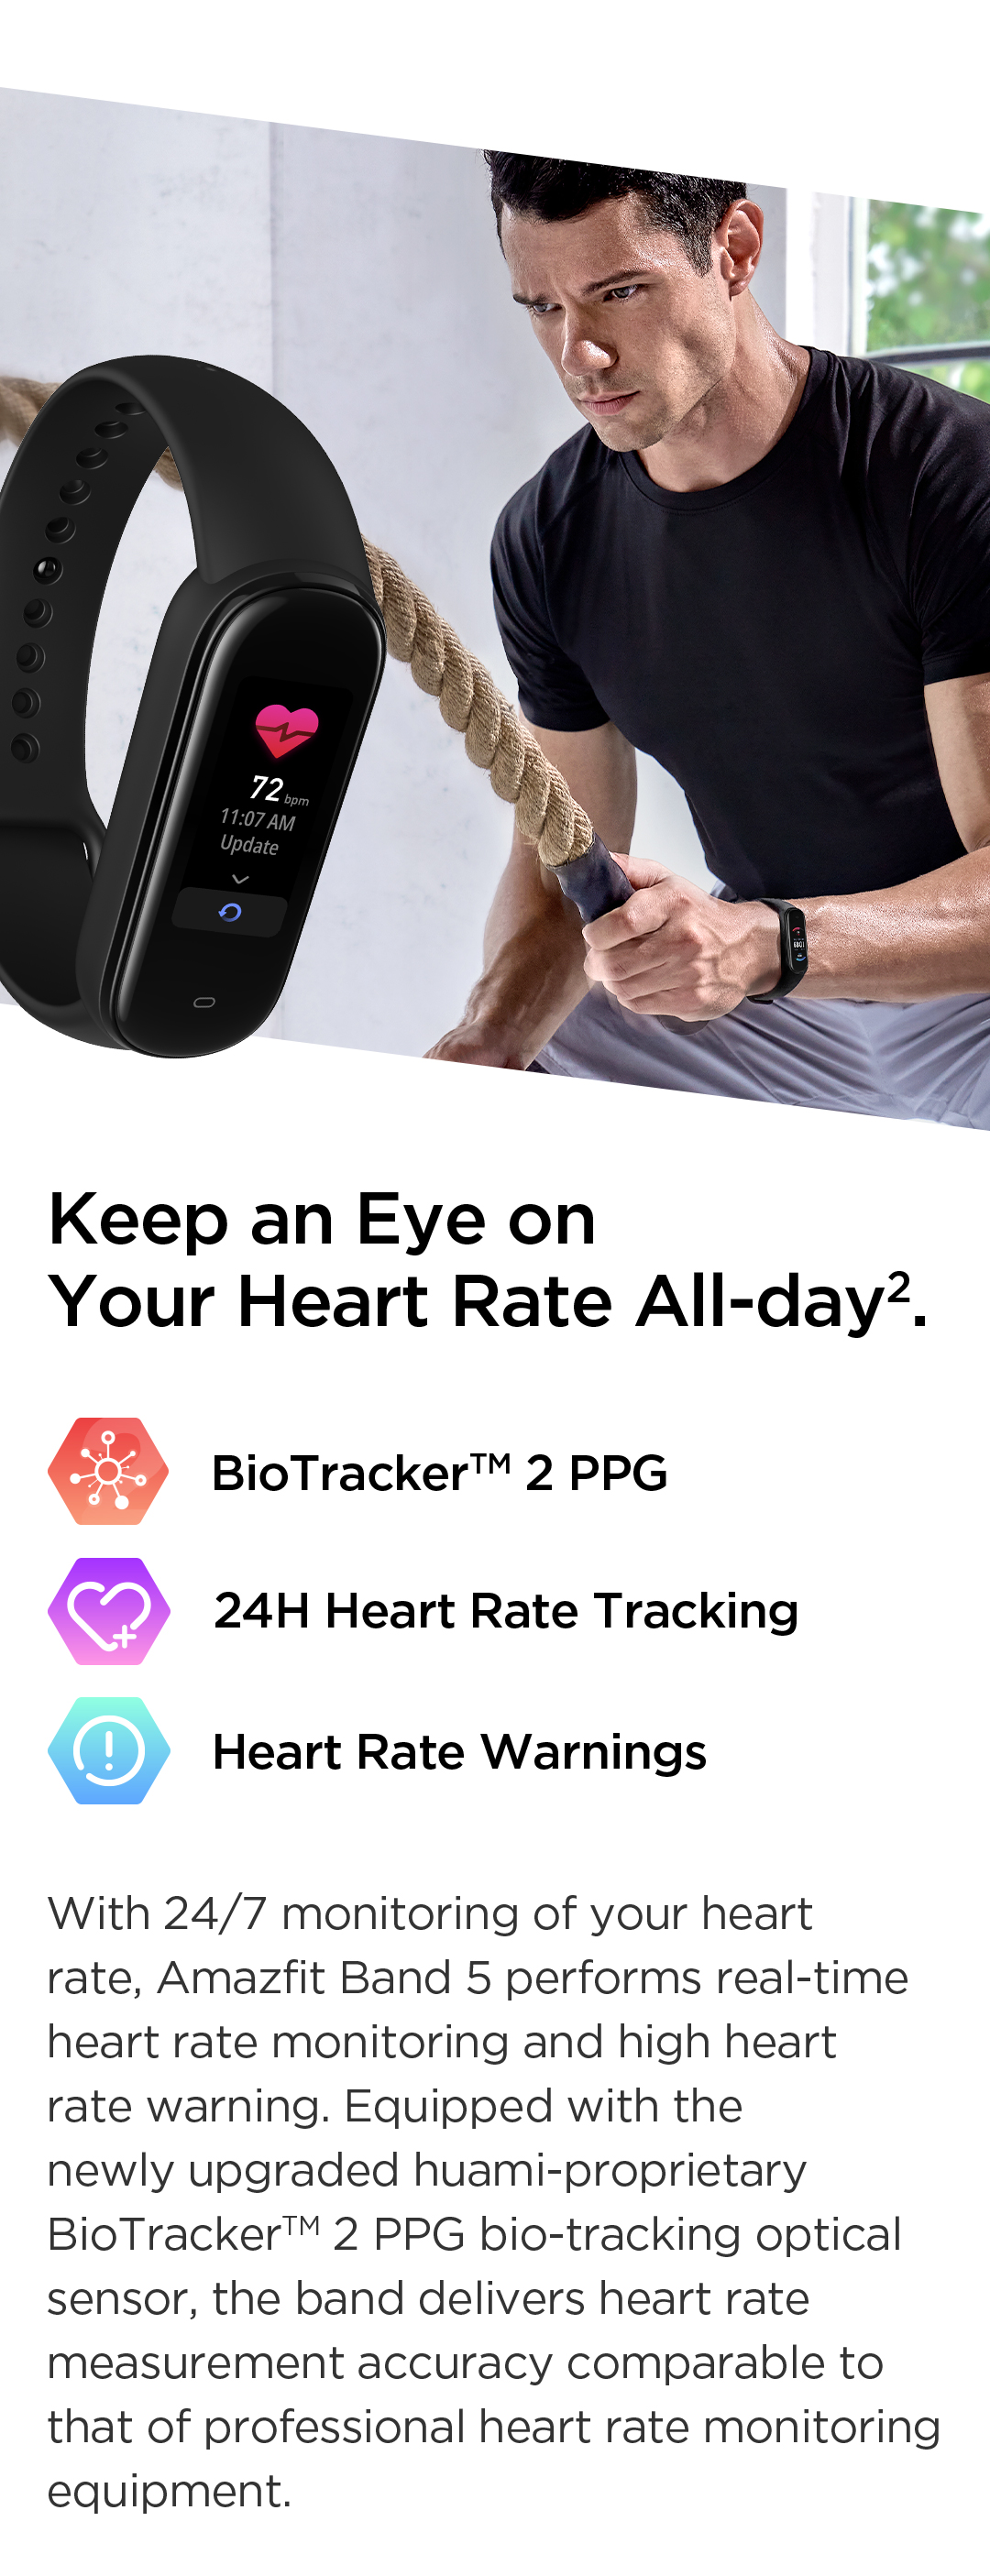 Amazfit Band 5 All Day Heart Rate Monitoring